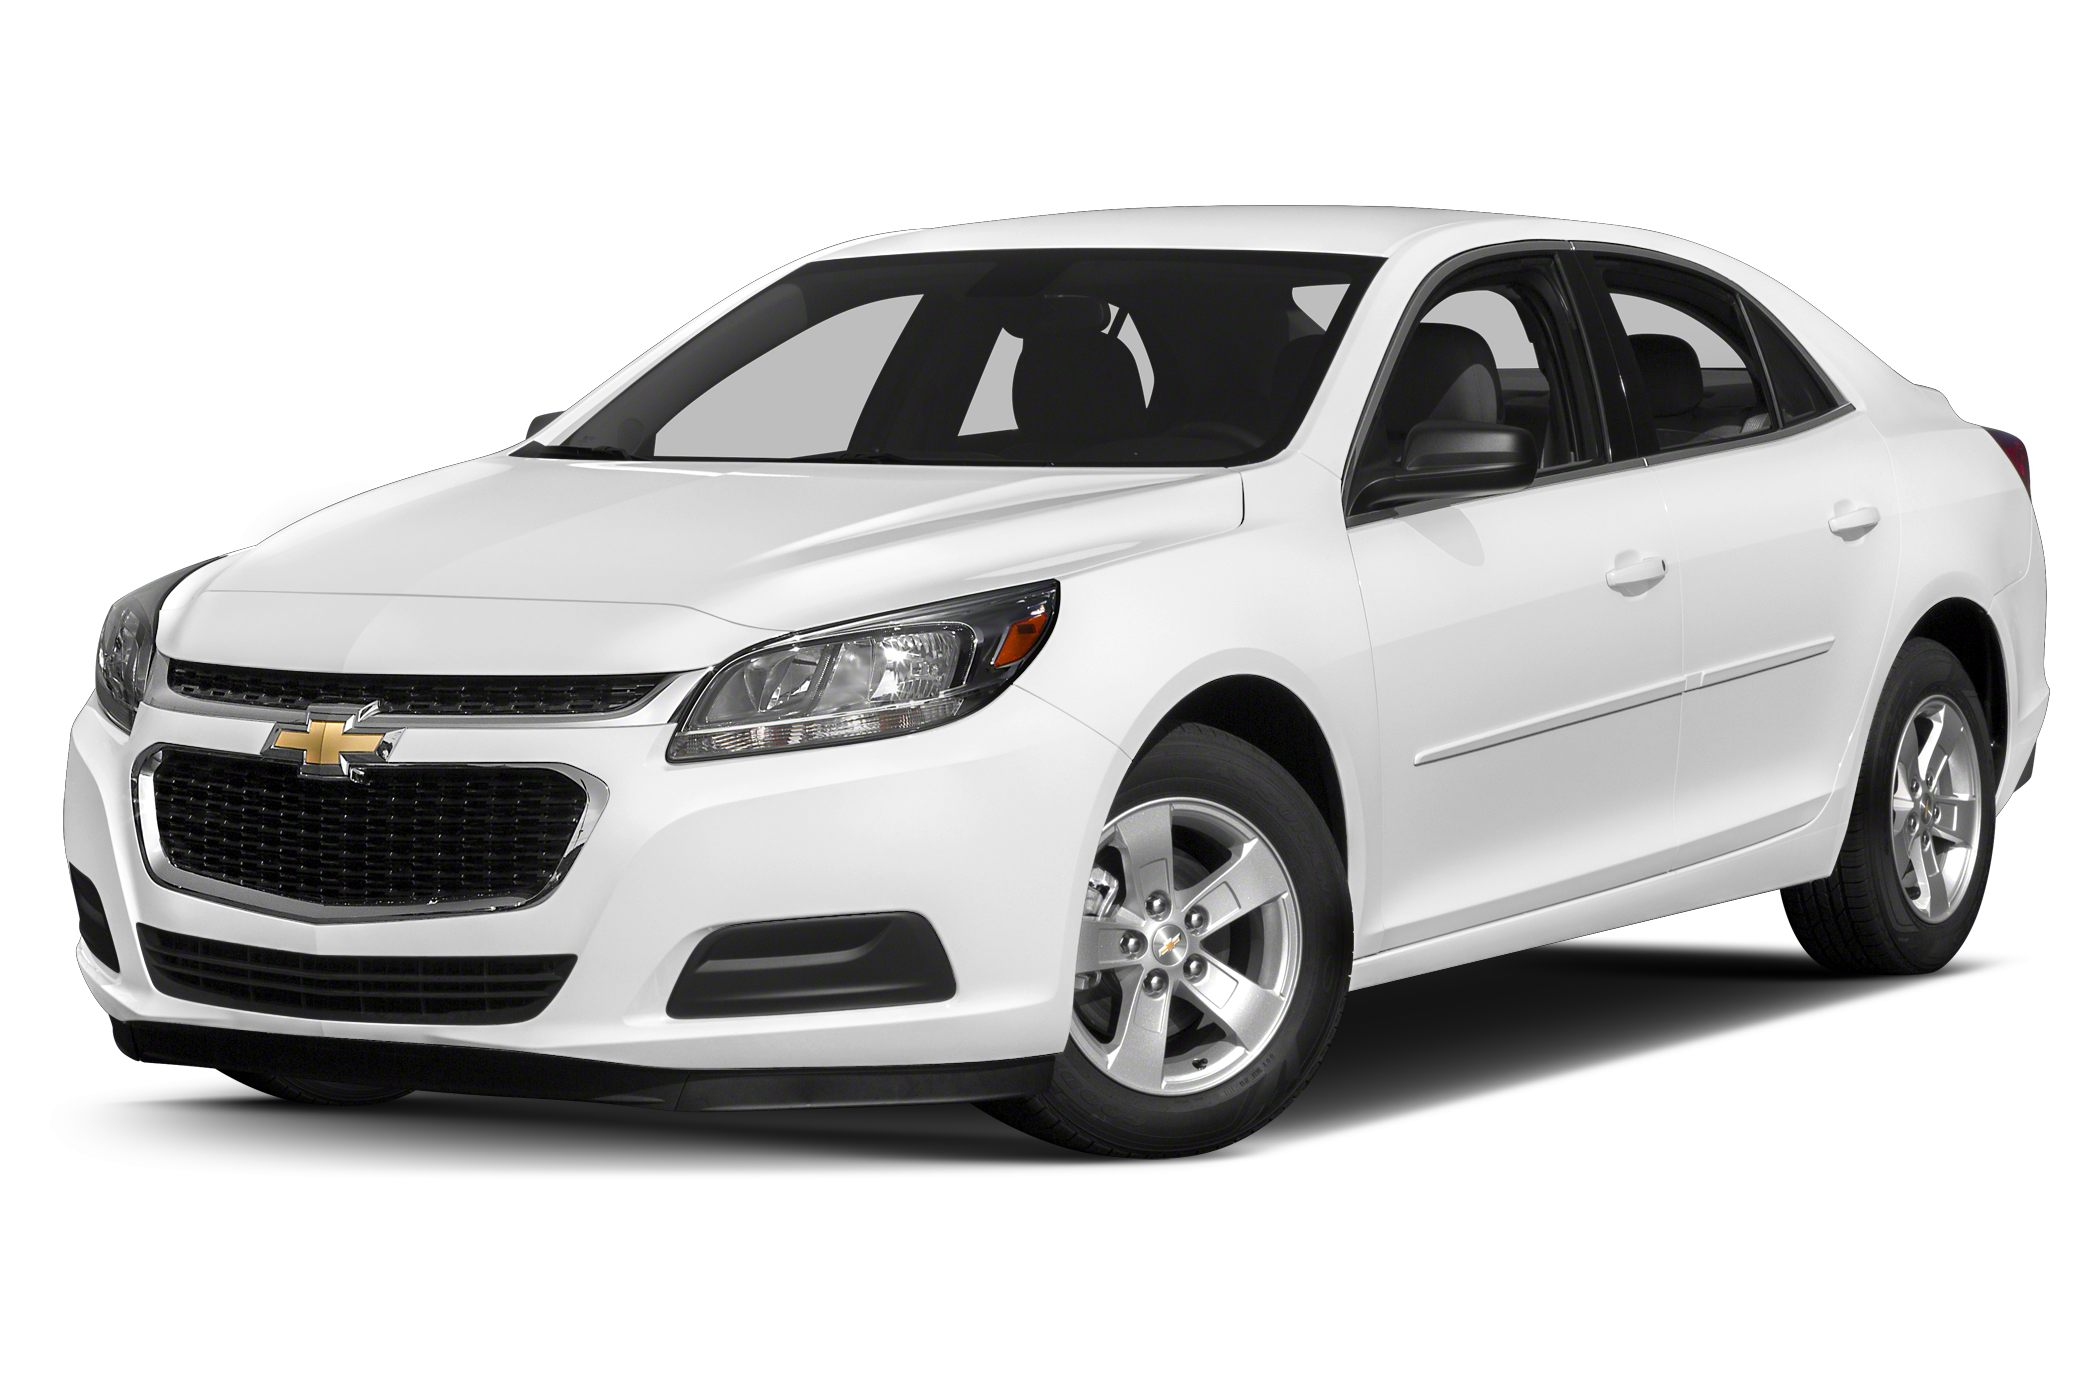 2016 Chevrolet Malibu Limited Pricing And Specs